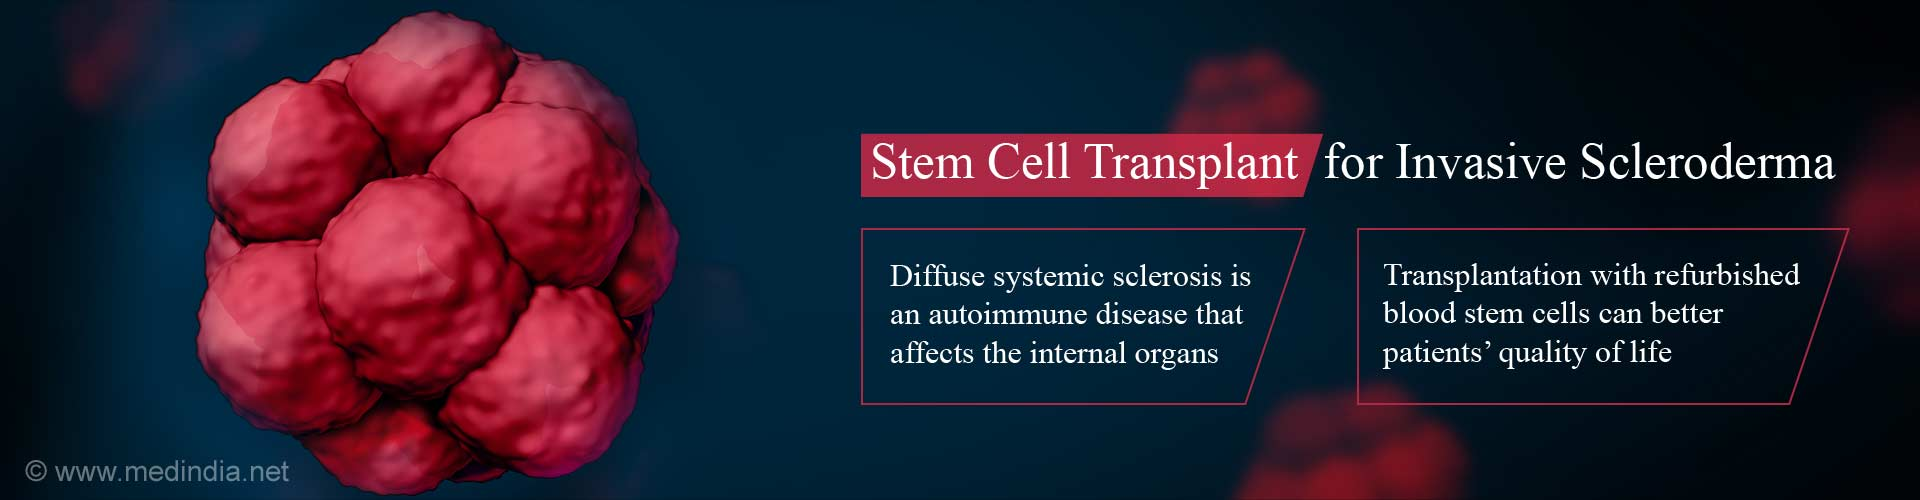 Stem Cell Transplant Improves Patients' Quality of Life With Severe Scleroderma